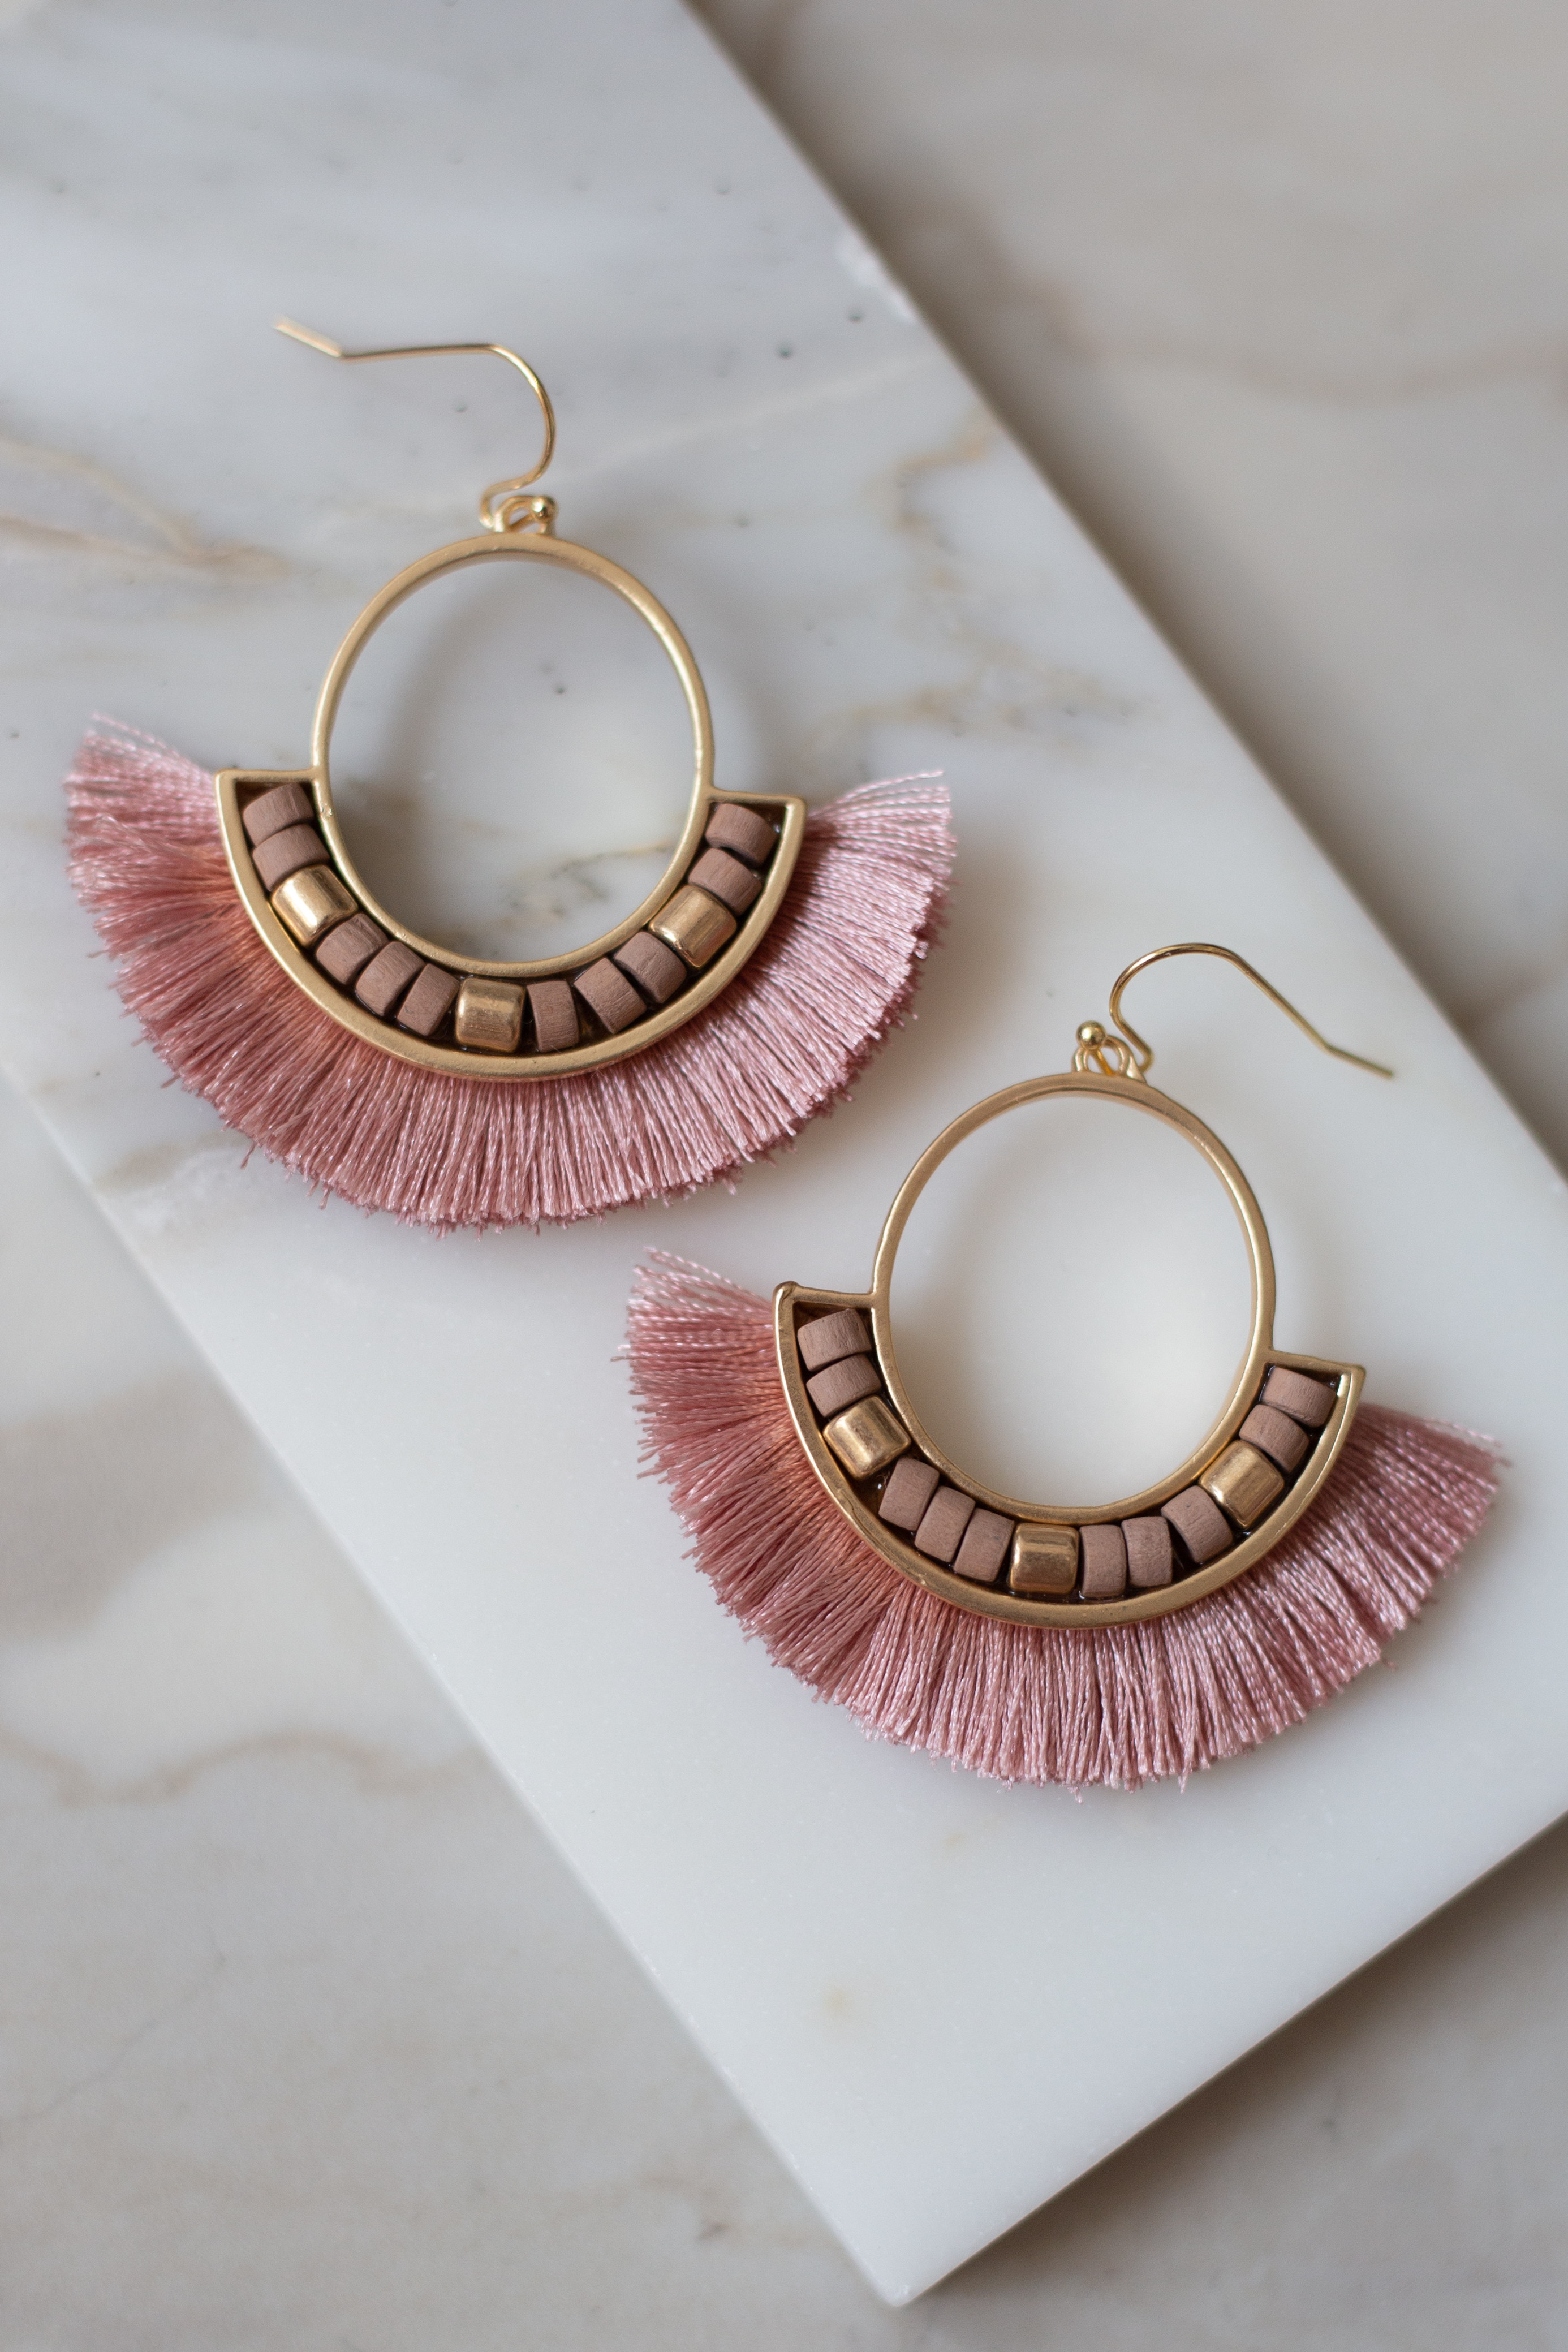 Blush and Gold Tassel Fan Dangle Earrings with Bead Details